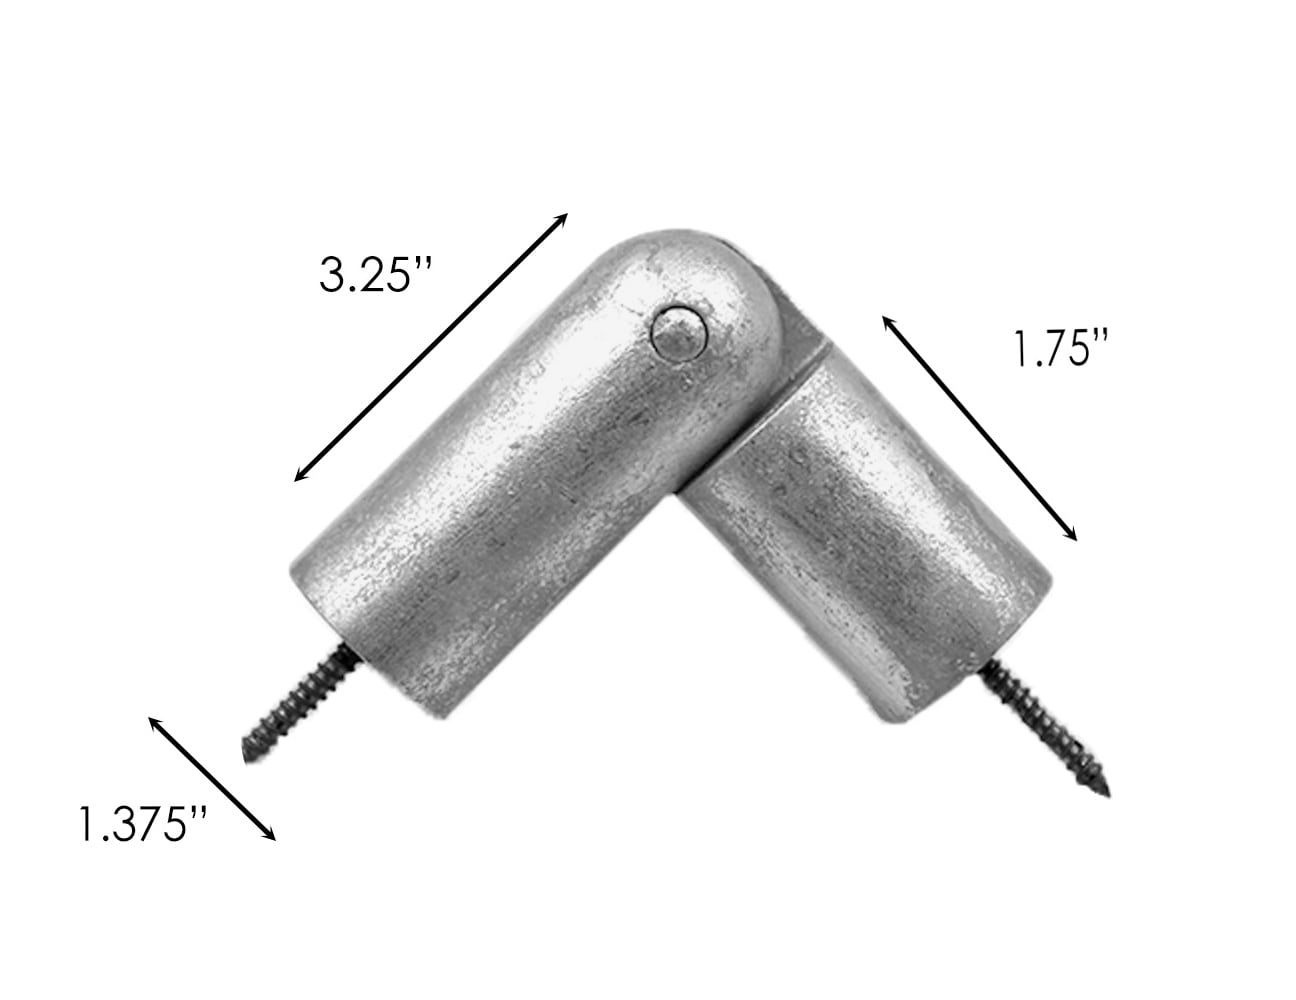 Sizing for Smooth Rod Elbow